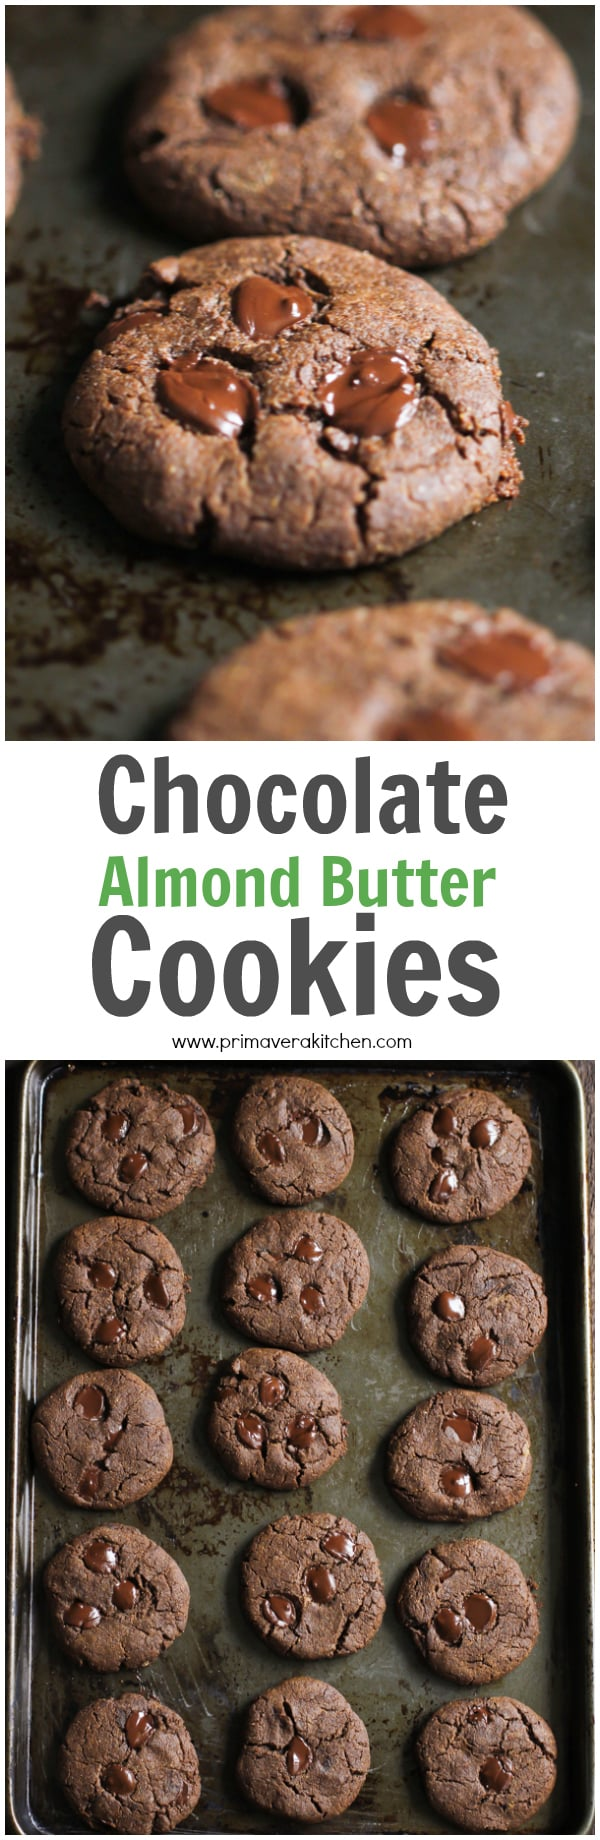 Almond Butter Cookies - These gluten-free and Paleo Chocolate Almond ...